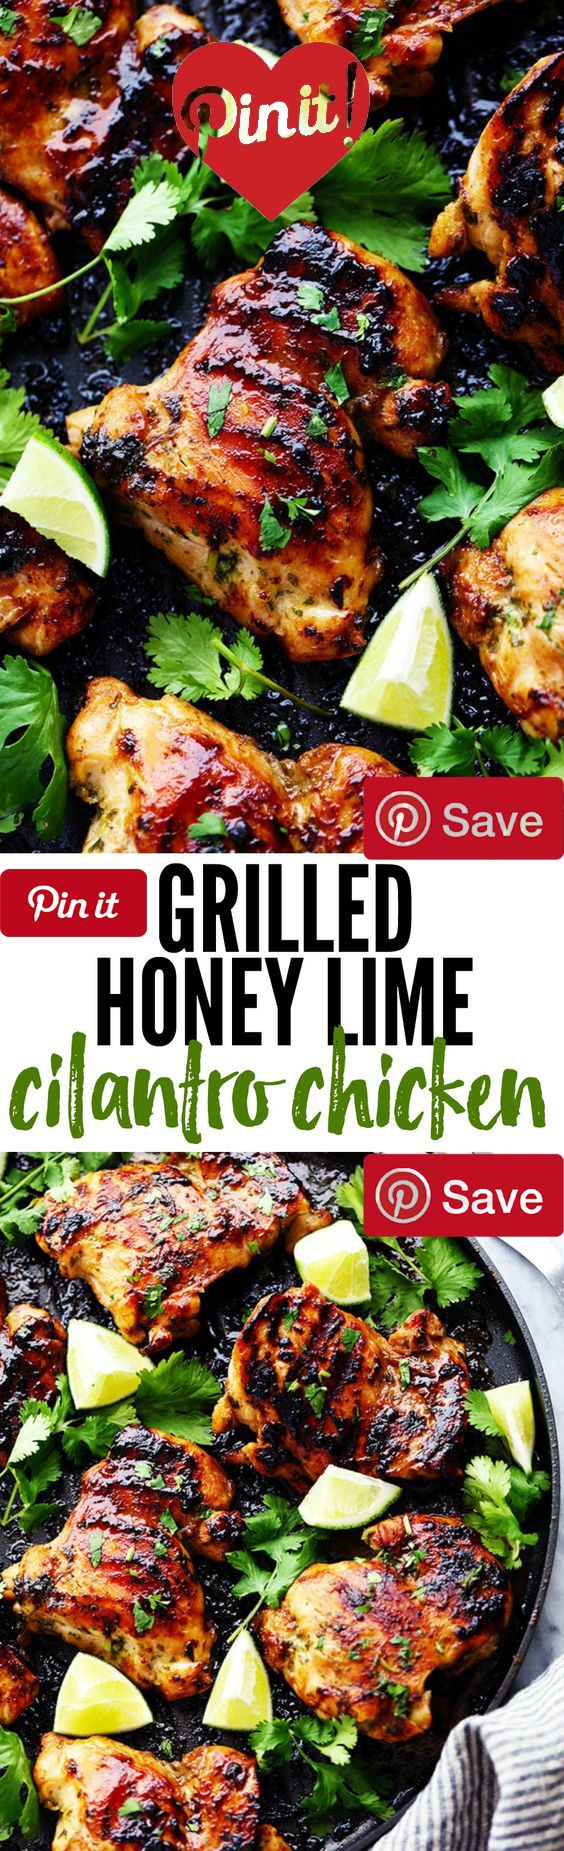 Grilled Honey Lime Cilantro Chicken Gluten free Meat chickenz 2 lbs Chicken breasts boneless skinless Produce cup Cilantro 2 Garlic cloves Condiments cup Honey cup Lime juice 2 tbsp Soy sauce Baking & Spices tsp Pepper tsp Salt Oils & Vinegars 1 tbsp Olive oil